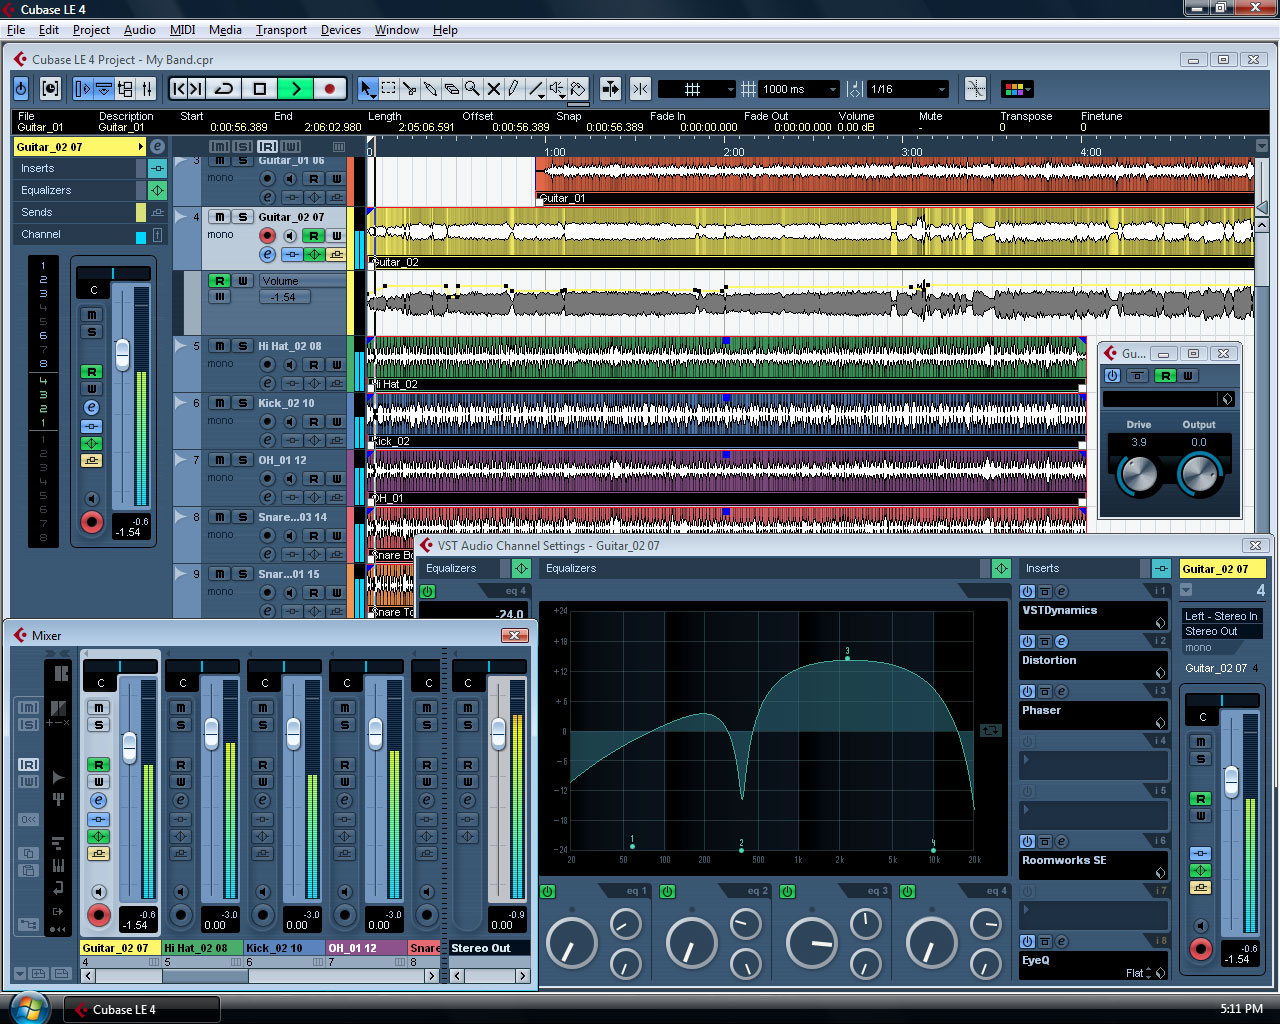 cubase_screen.jpg